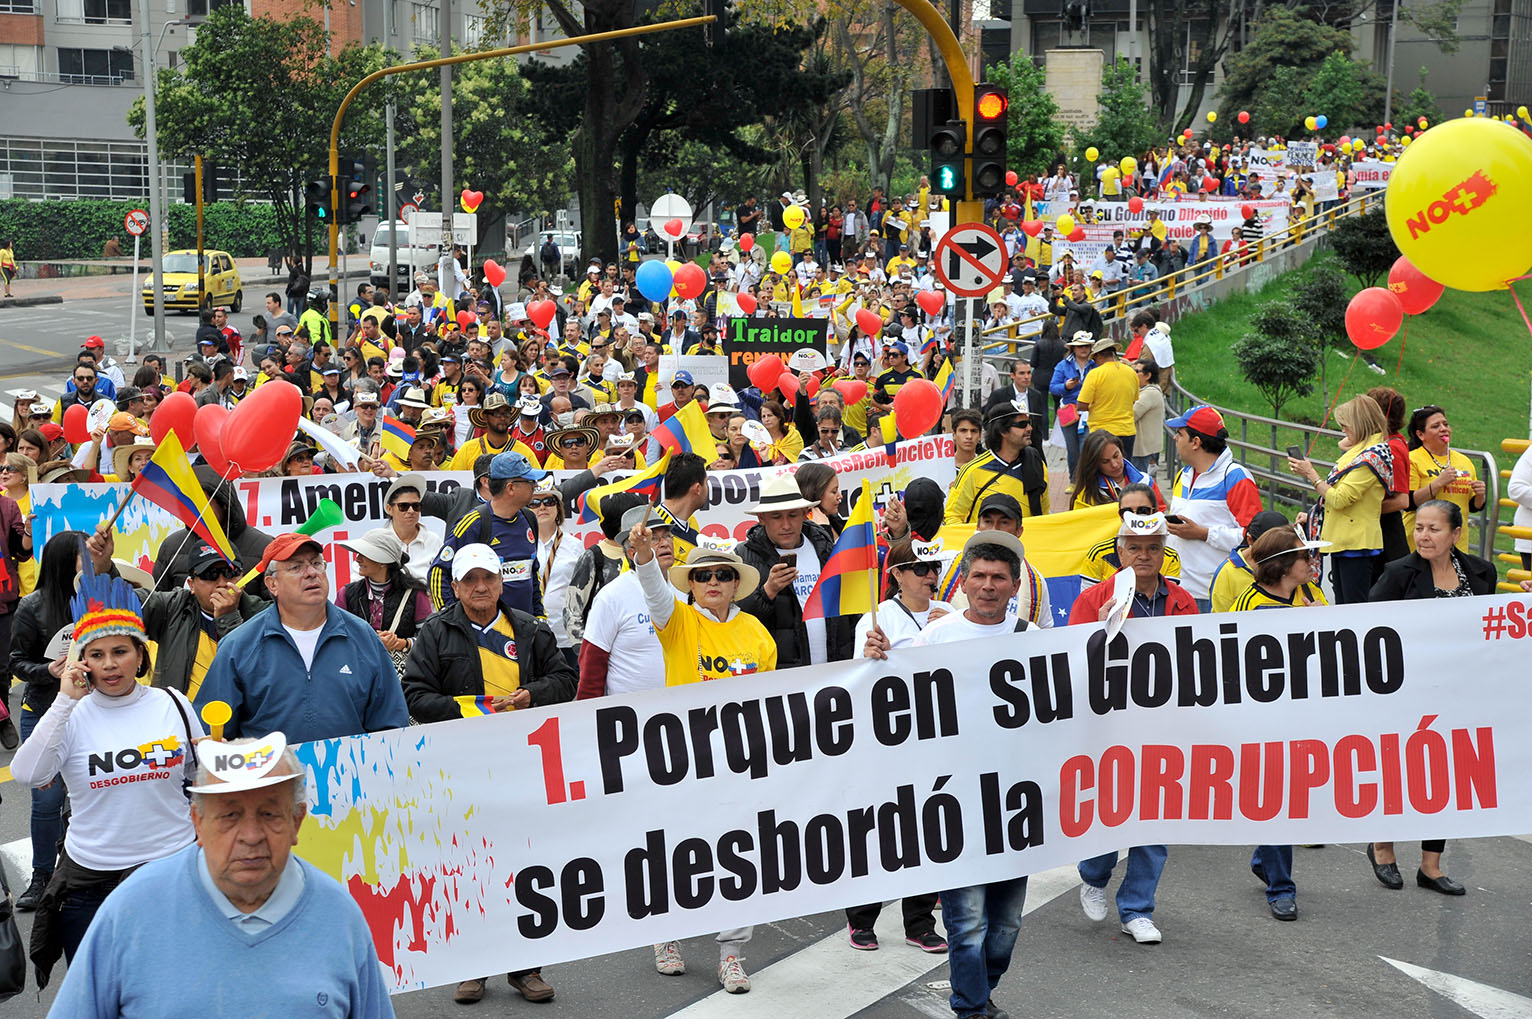 corruption in colombia Colombians are fed up with government corruption latin americans in colombia and elsewhere are taking to the streets to demand better leadership.